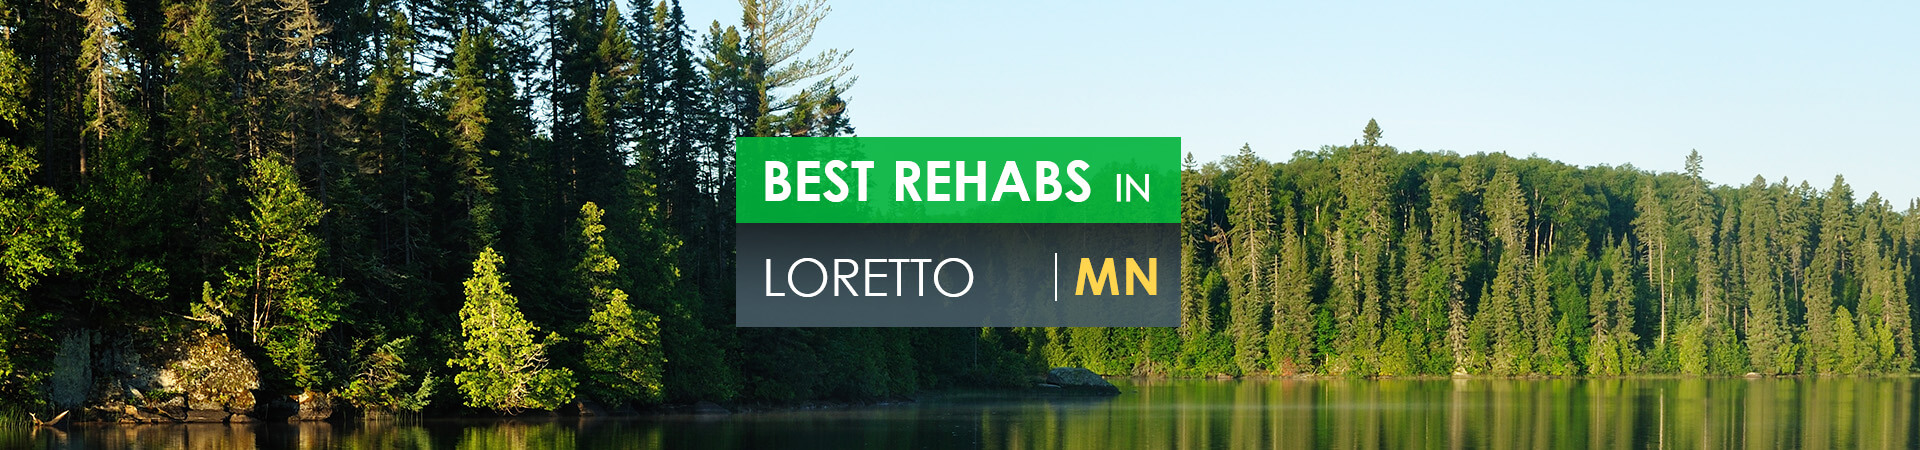 Best rehabs in Loretto, MN